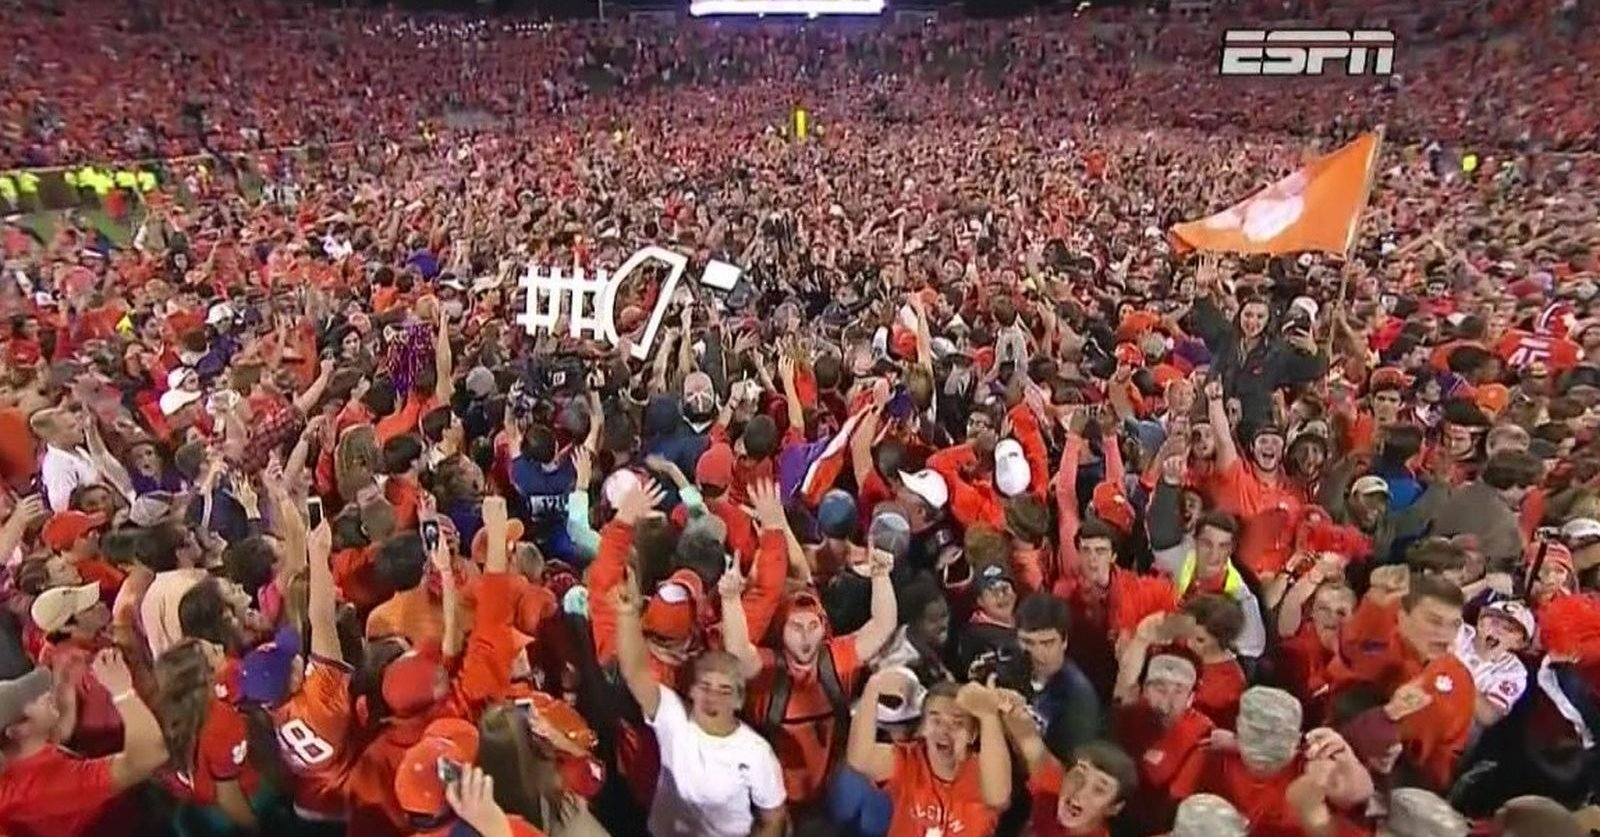 Clemson fans stormed the field after a dramatic 42-36 victory over Louisville. (Oct 1, 2016)